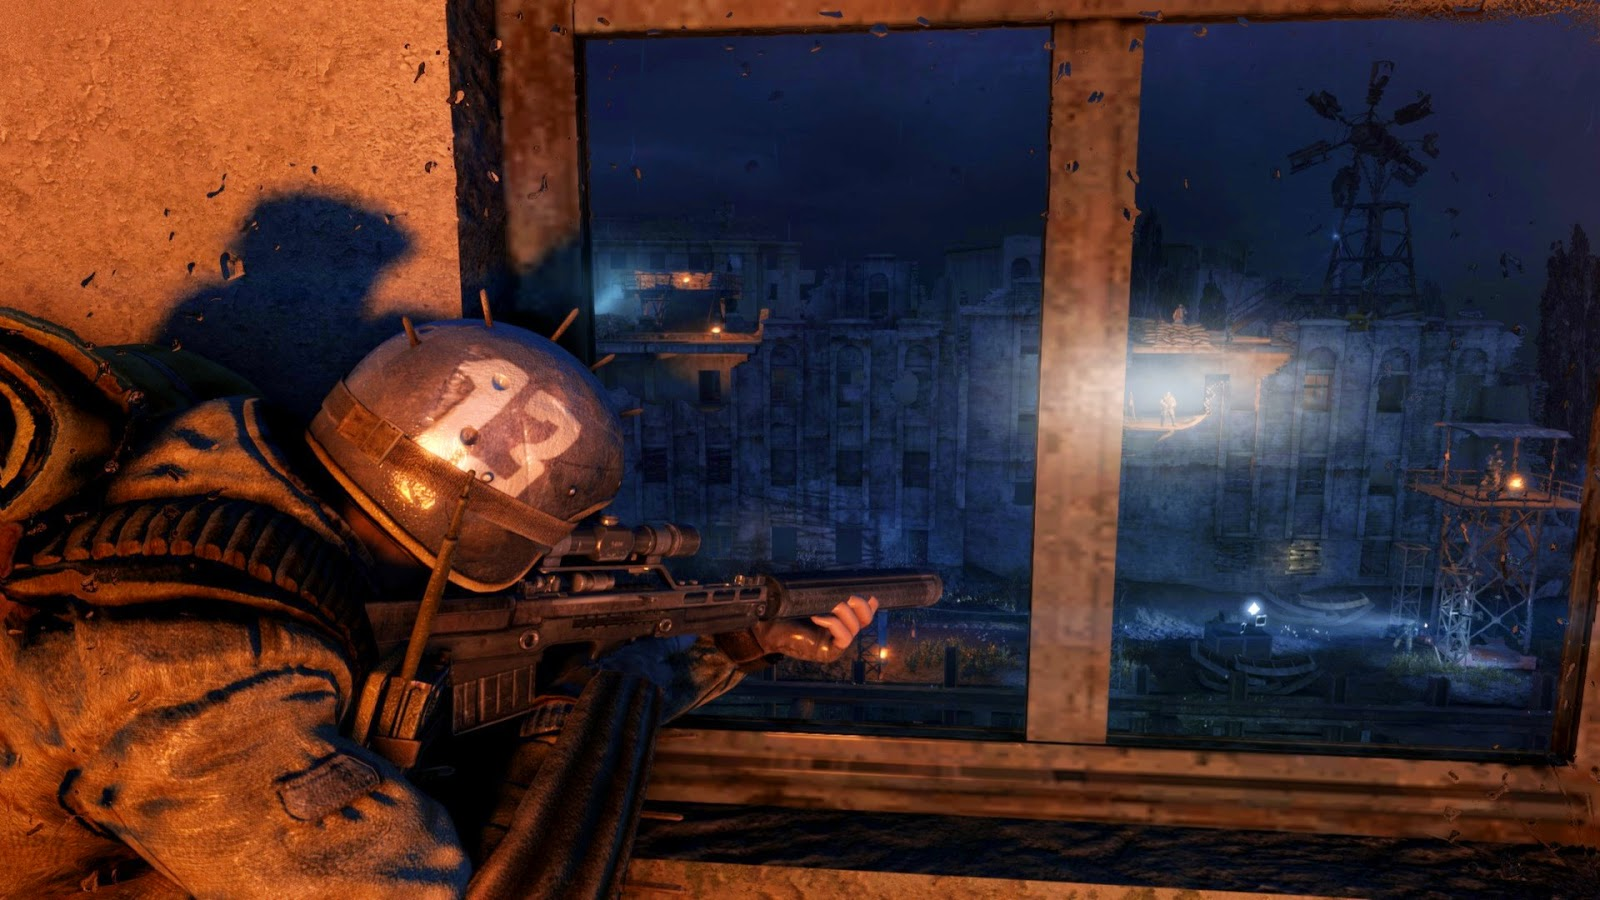 METRO LAST LIGHT V1.0.0.5 SCREENSHOT